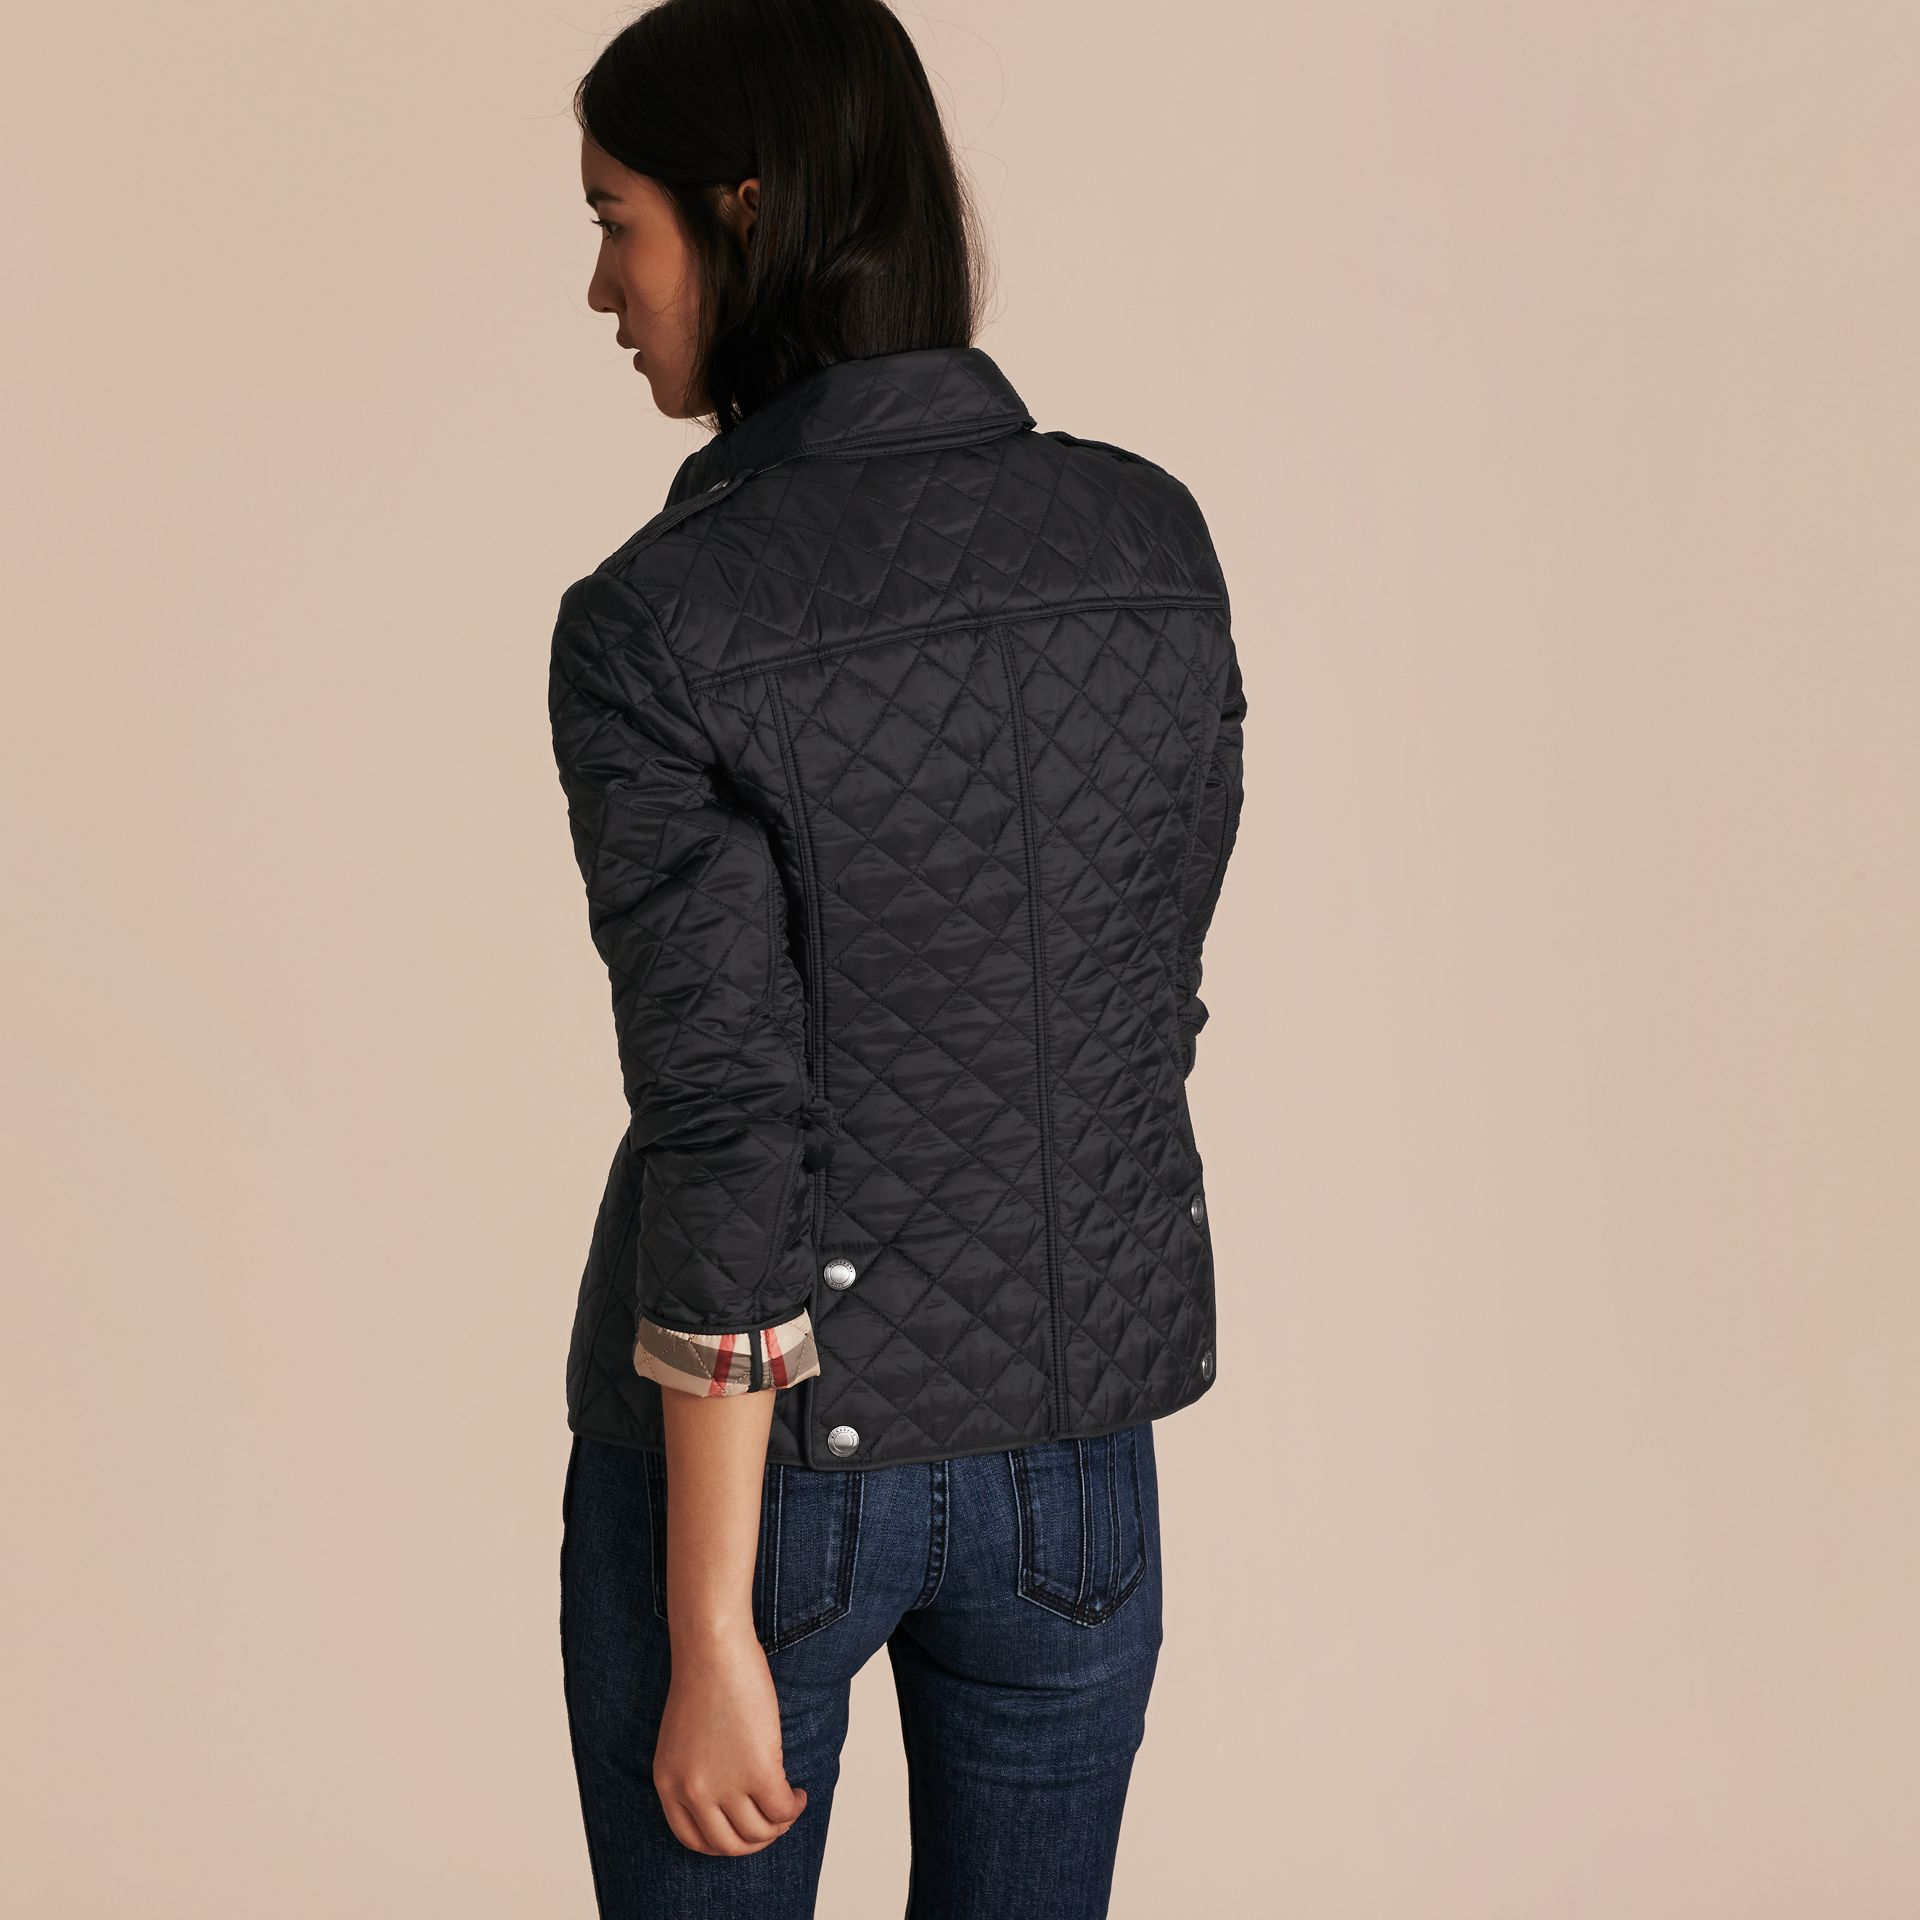 Black Diamond Quilted Jacket Black - gallery image 3